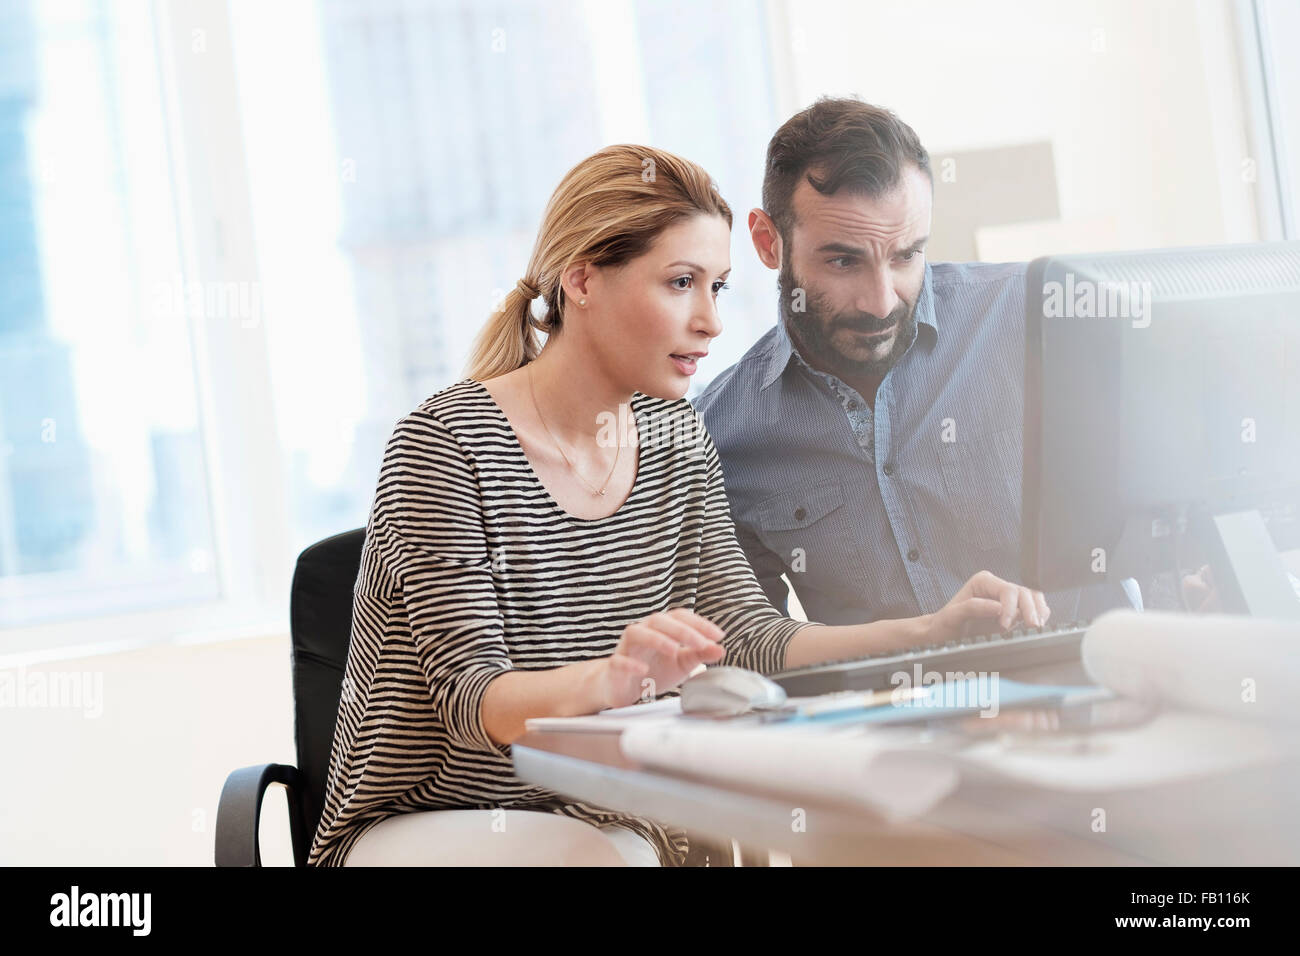 Man and woman looking at computer in office - Stock Image